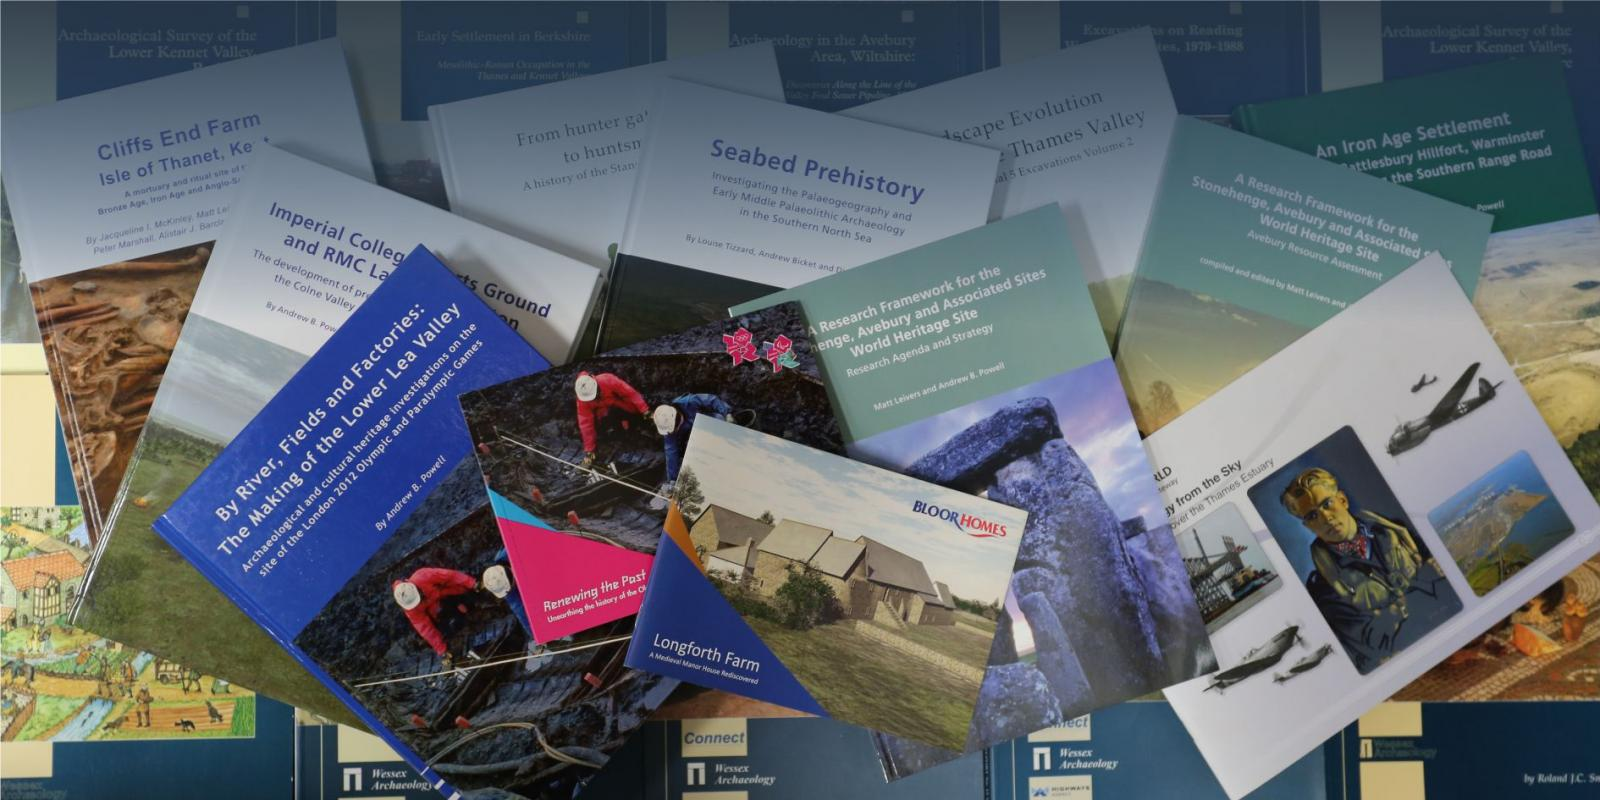 A range of publications